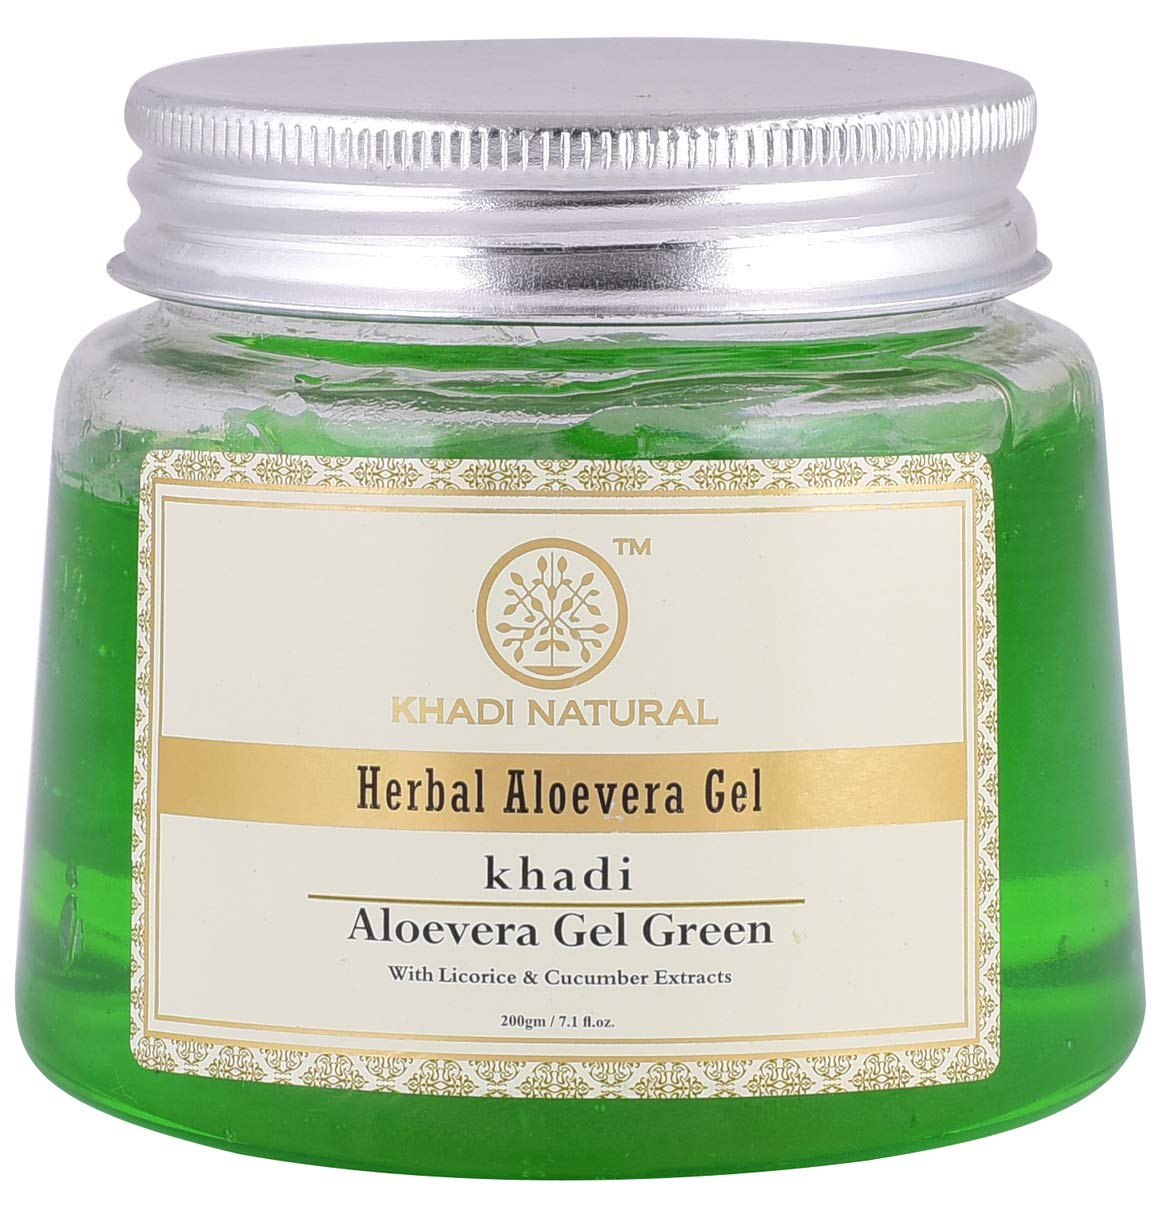 Khadi natural herbal aloe vera cream